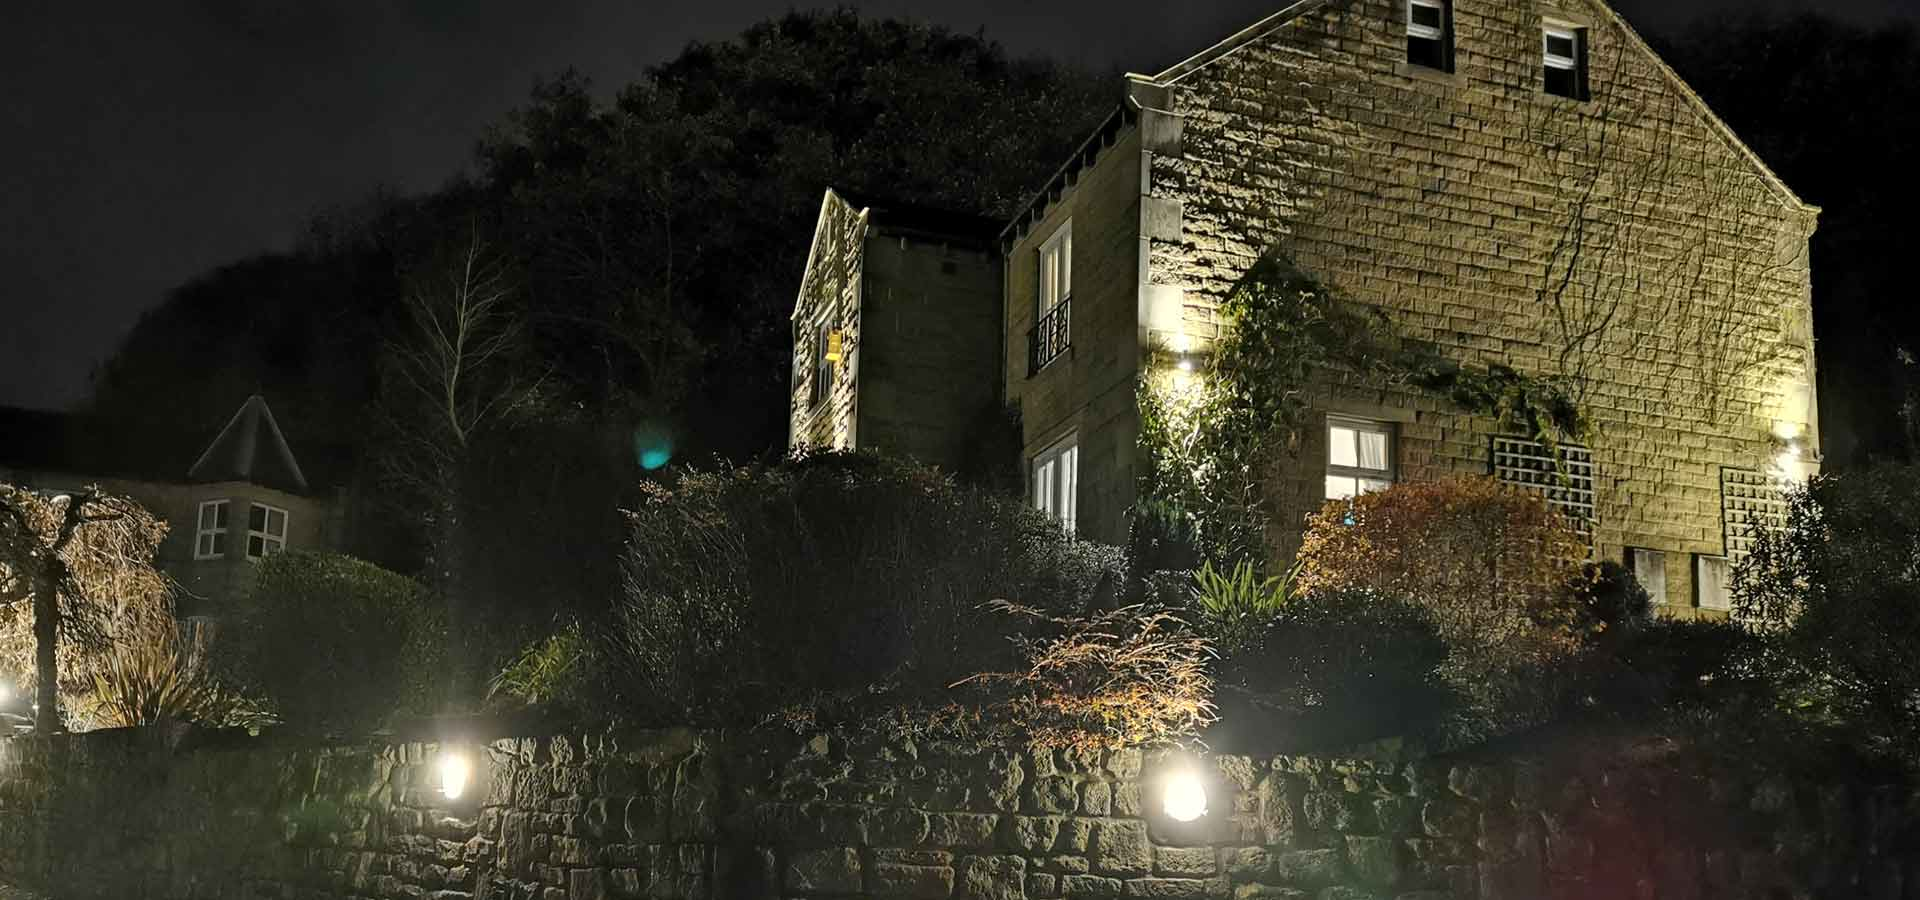 A large stone cottage from a side view in darkness lit up with outdoor lighting